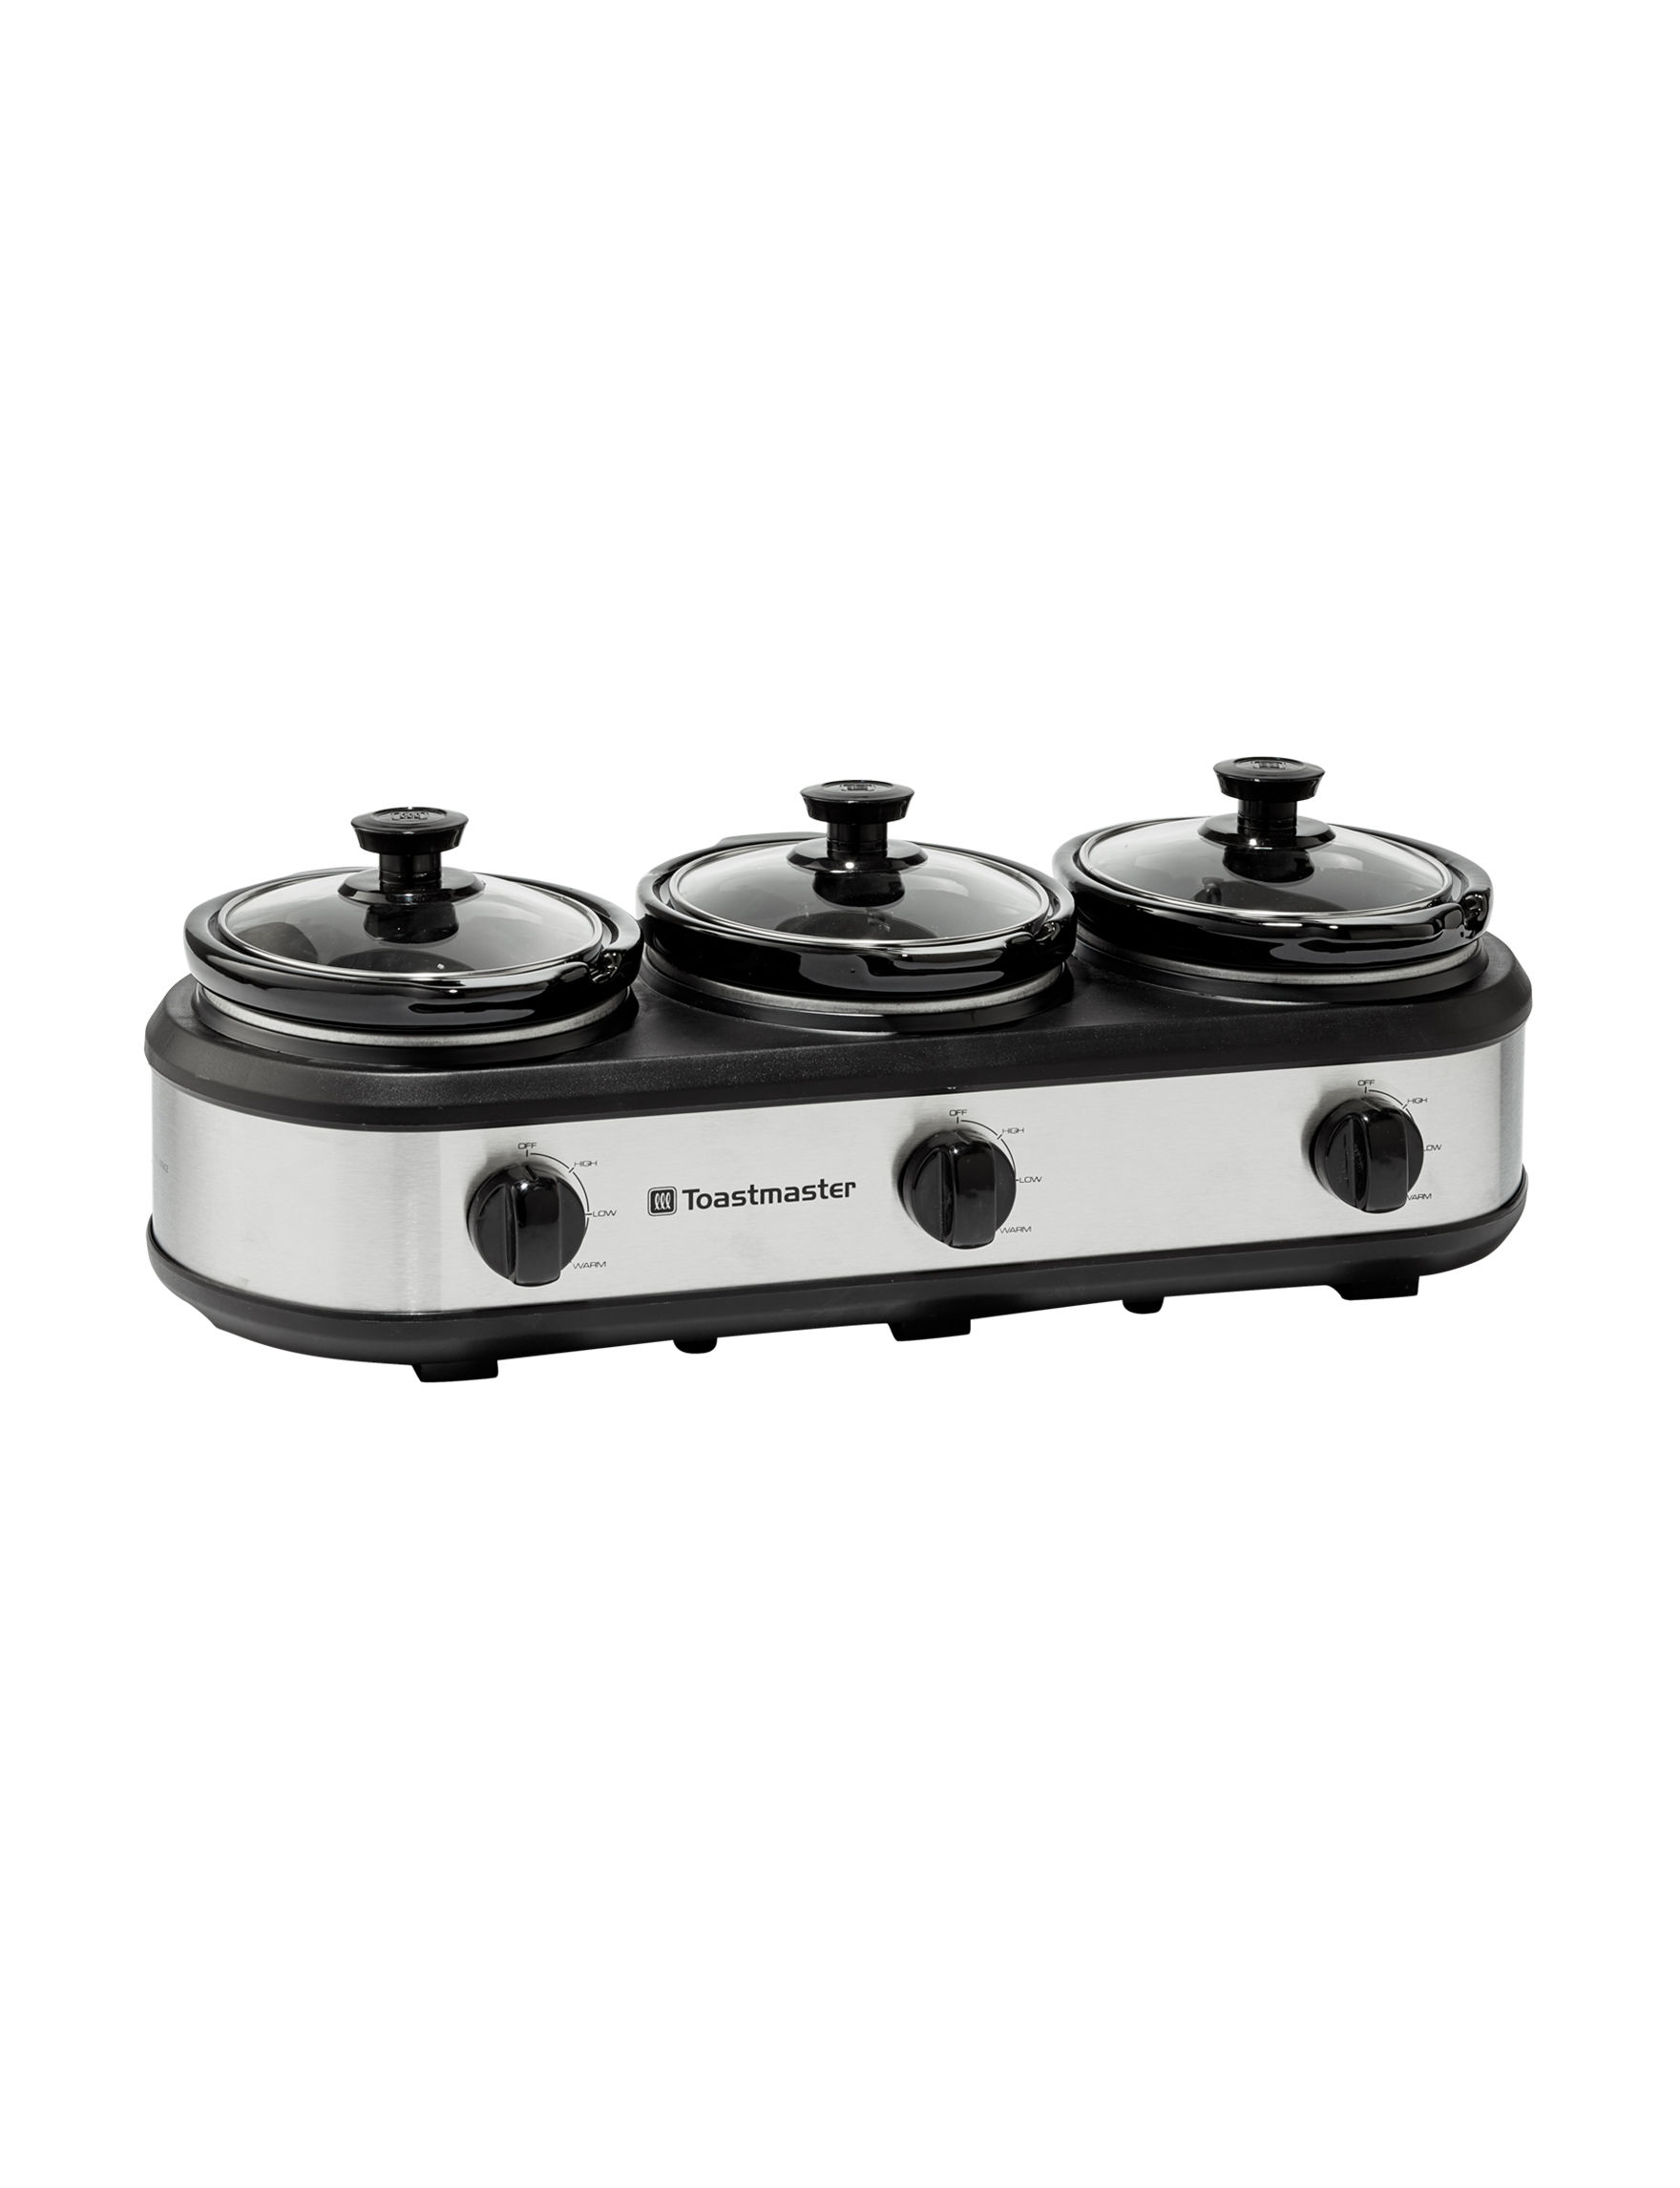 Toastmaster Black Slow Cookers Kitchen Appliances